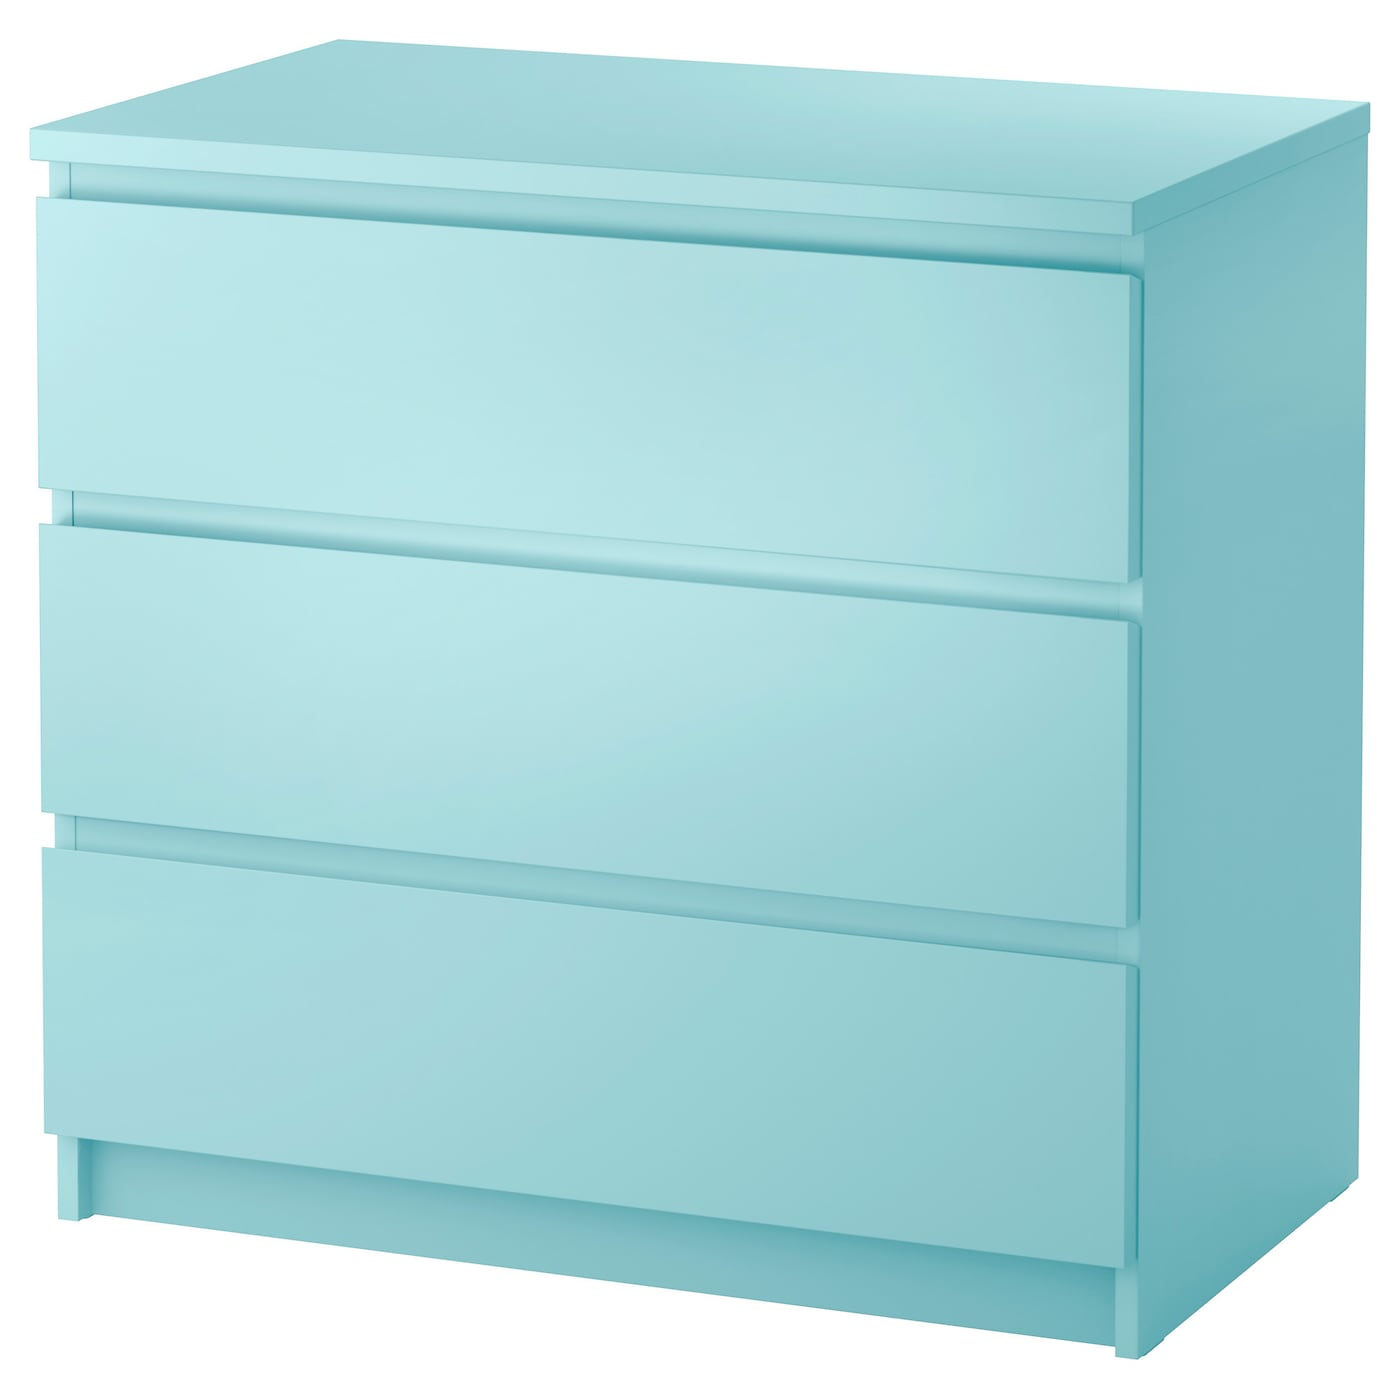 malm chest of 3 drawers light turquoise 80x78 cm ikea